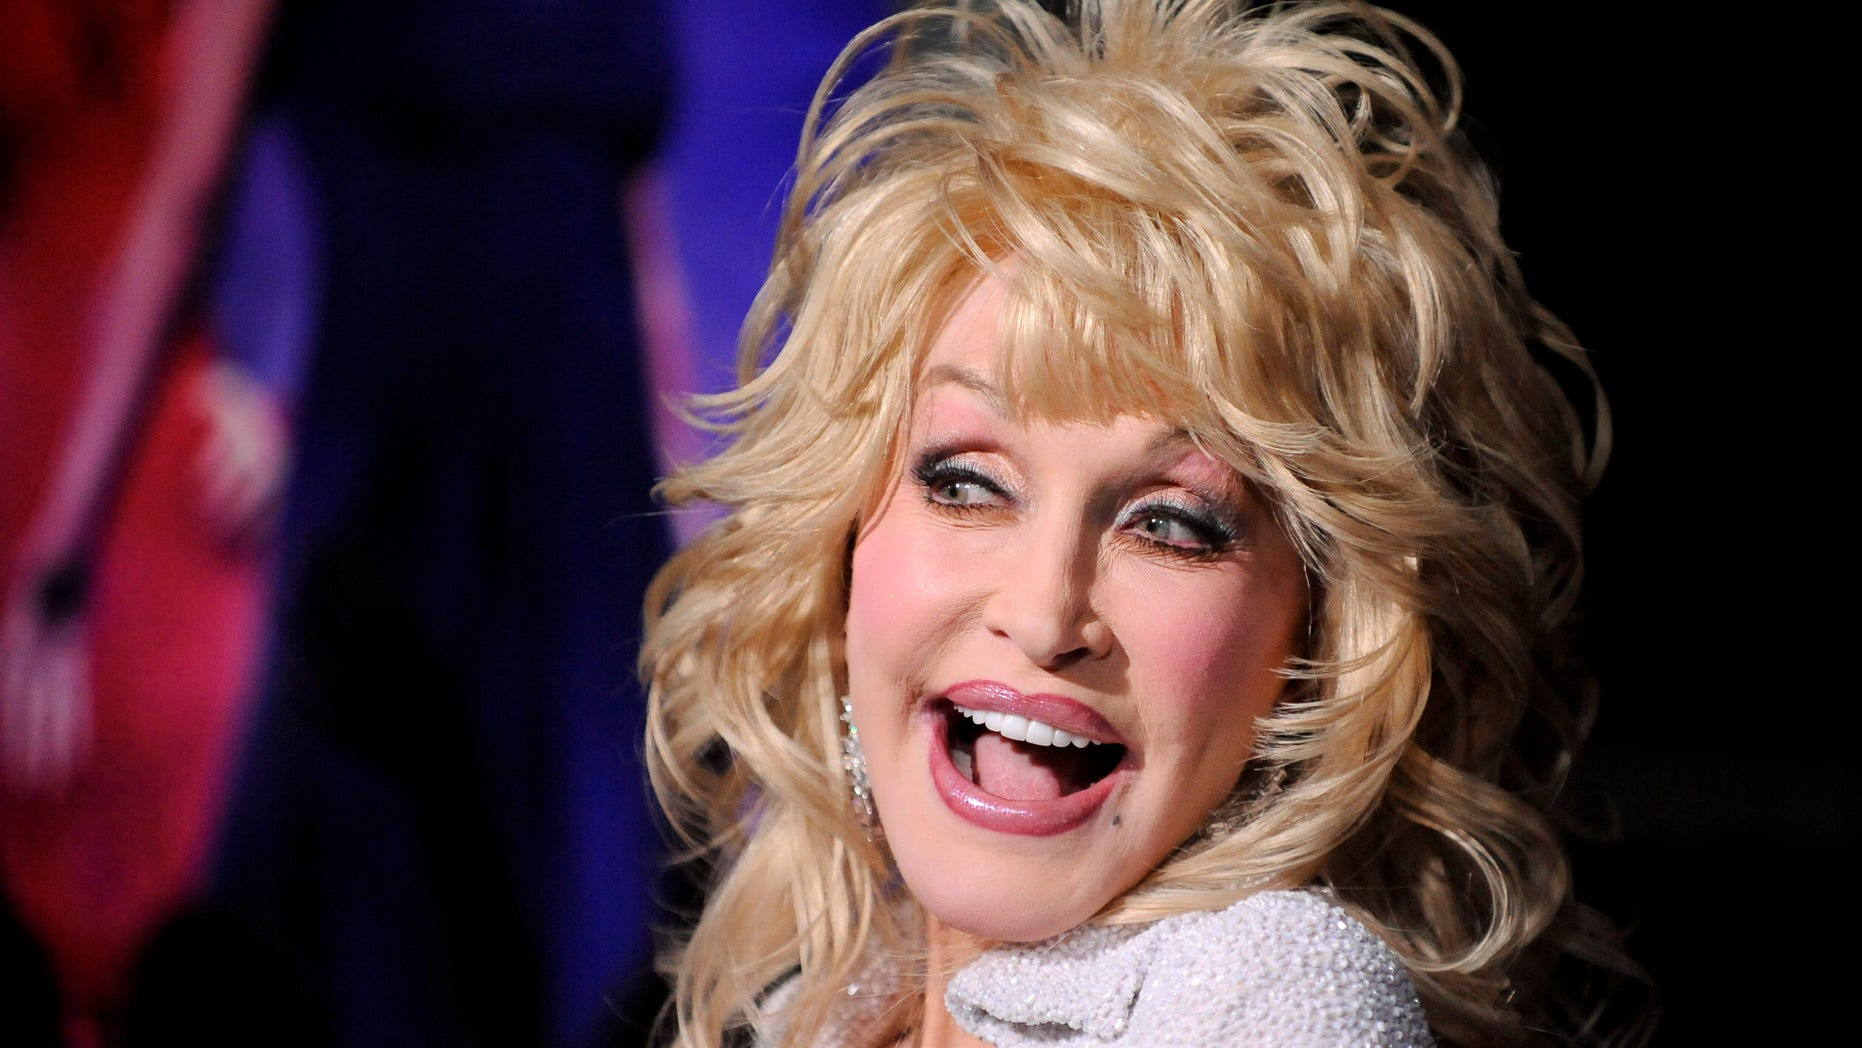 "Actress and singer Dolly Parton arrives at the Hollywood premiere of ""Joyful Noise"" in Los Angeles, California January 9, 2012. REUTERS/Gus Ruelas (UNITED STATES - Tags: ENTERTAINMENT HEADSHOT PROFILE) - RTR2W377"